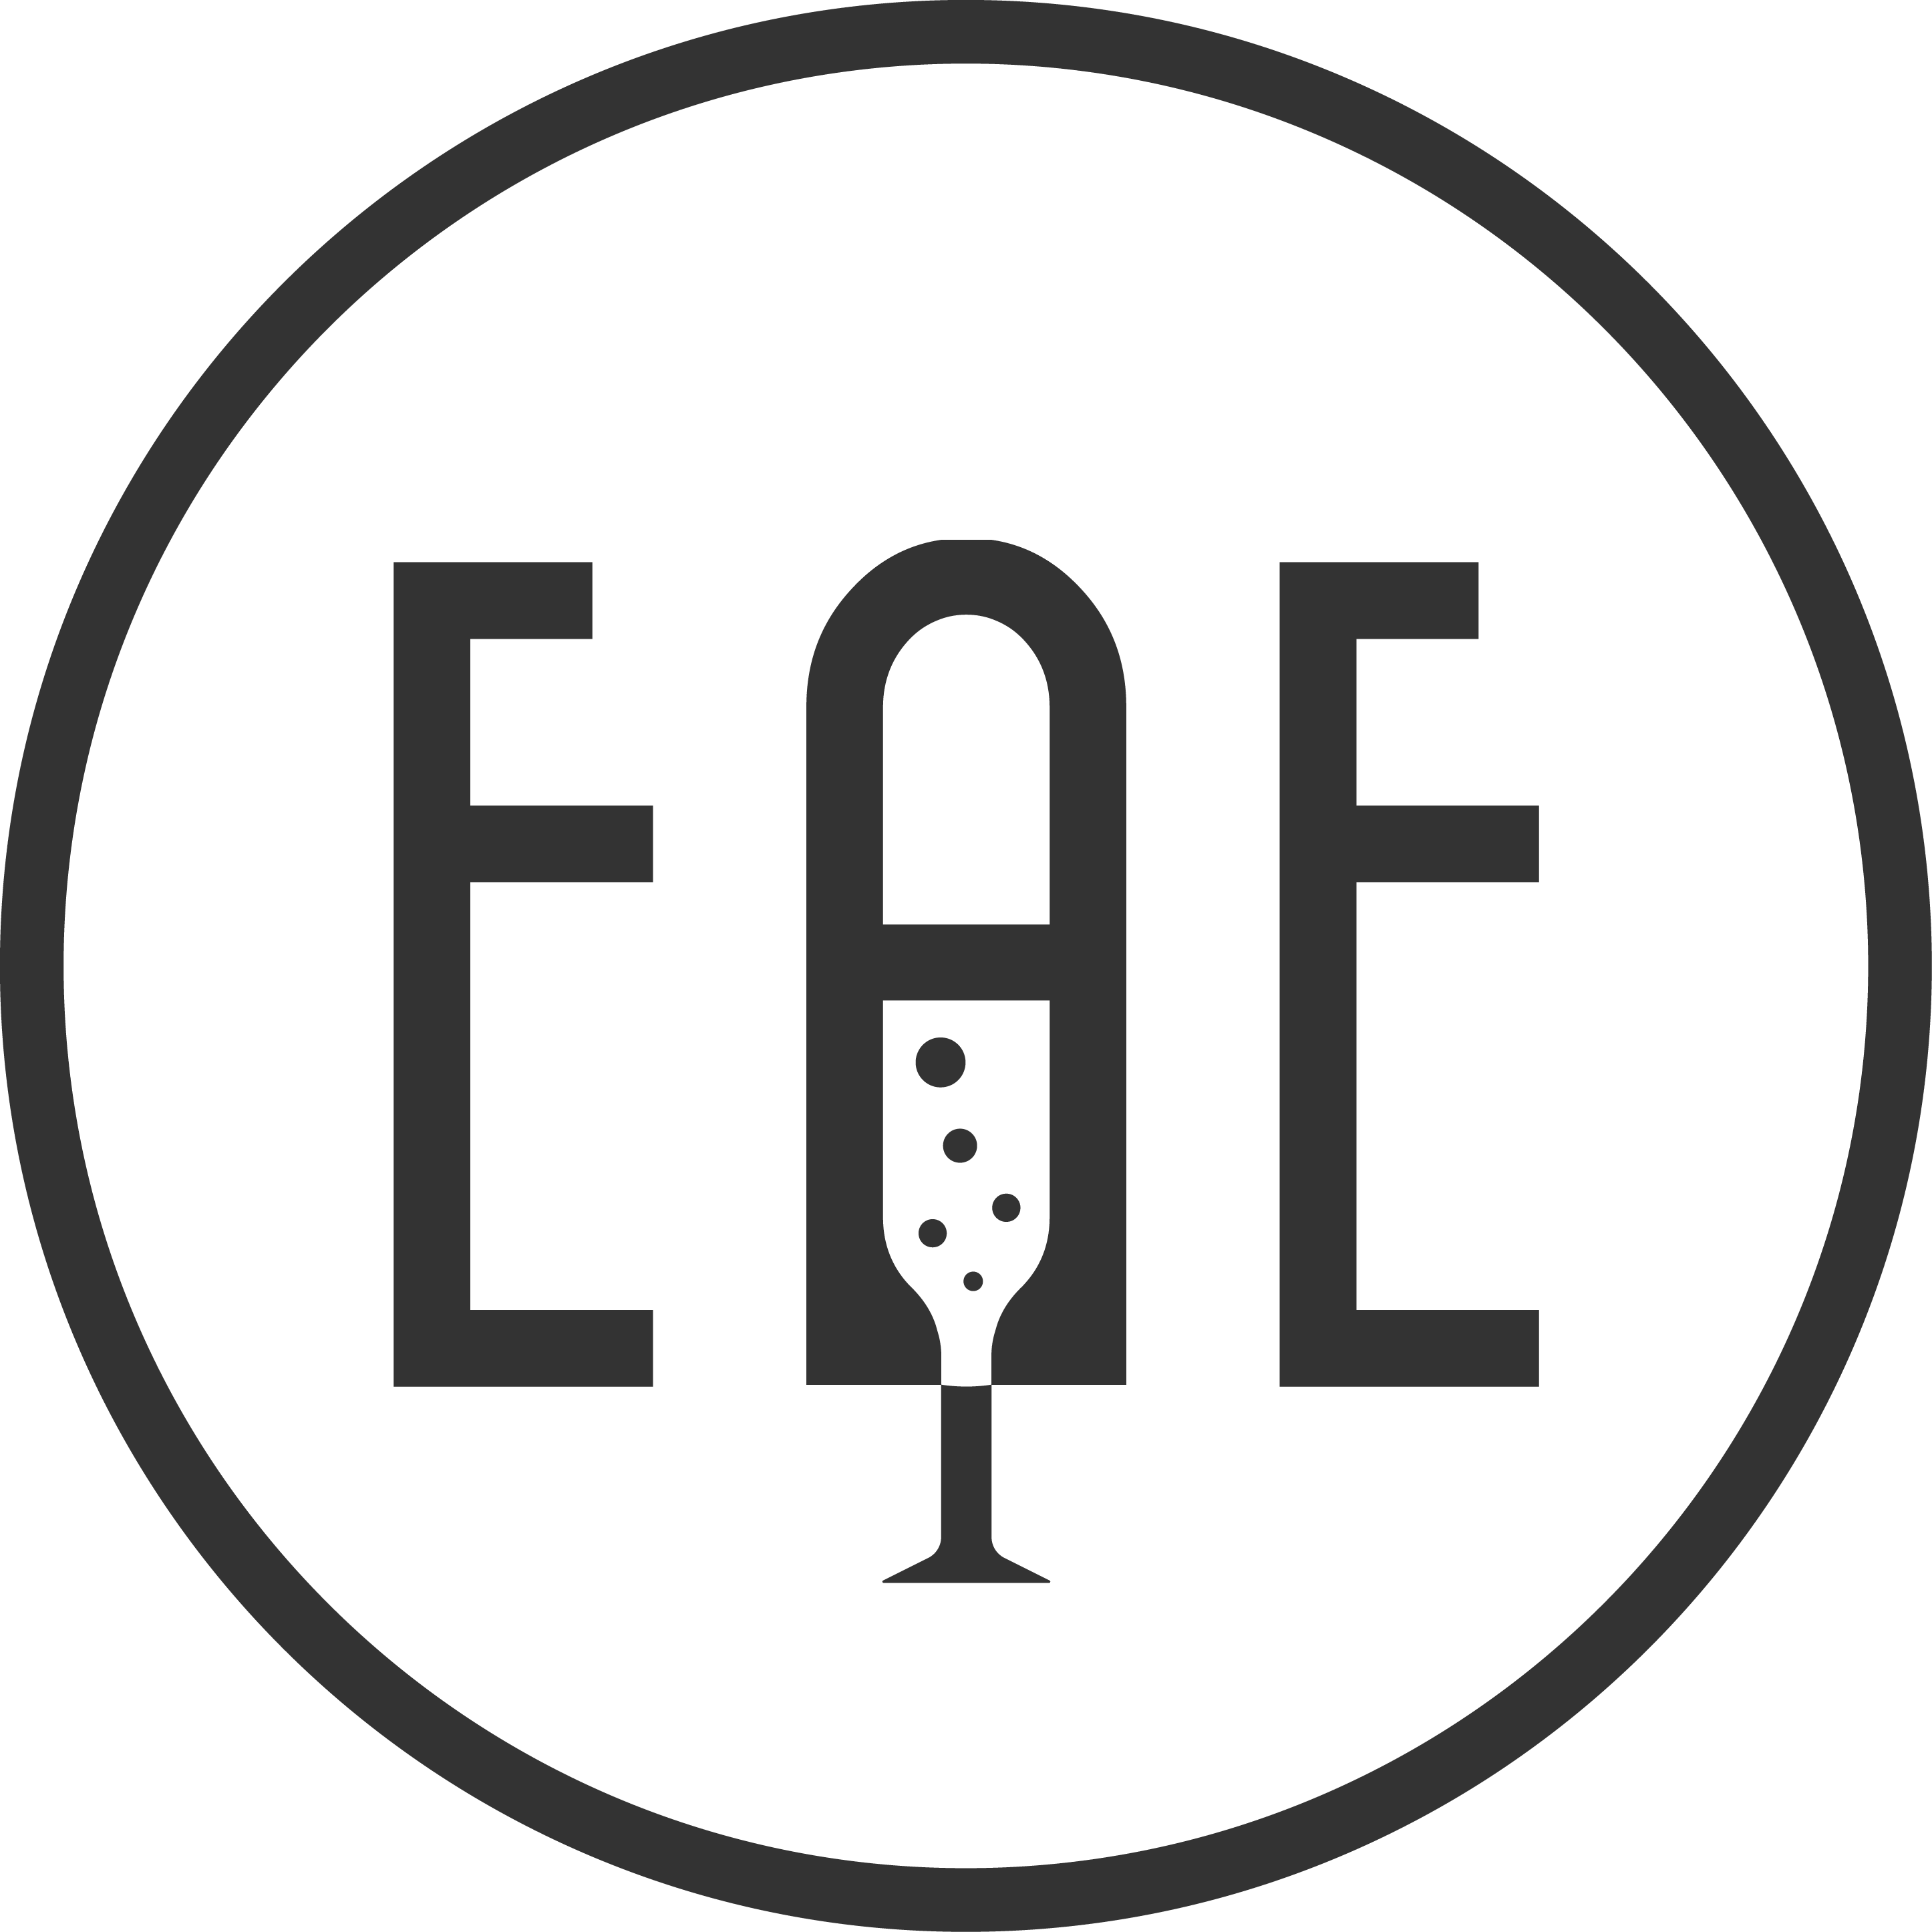 Logo for initial in wine industry